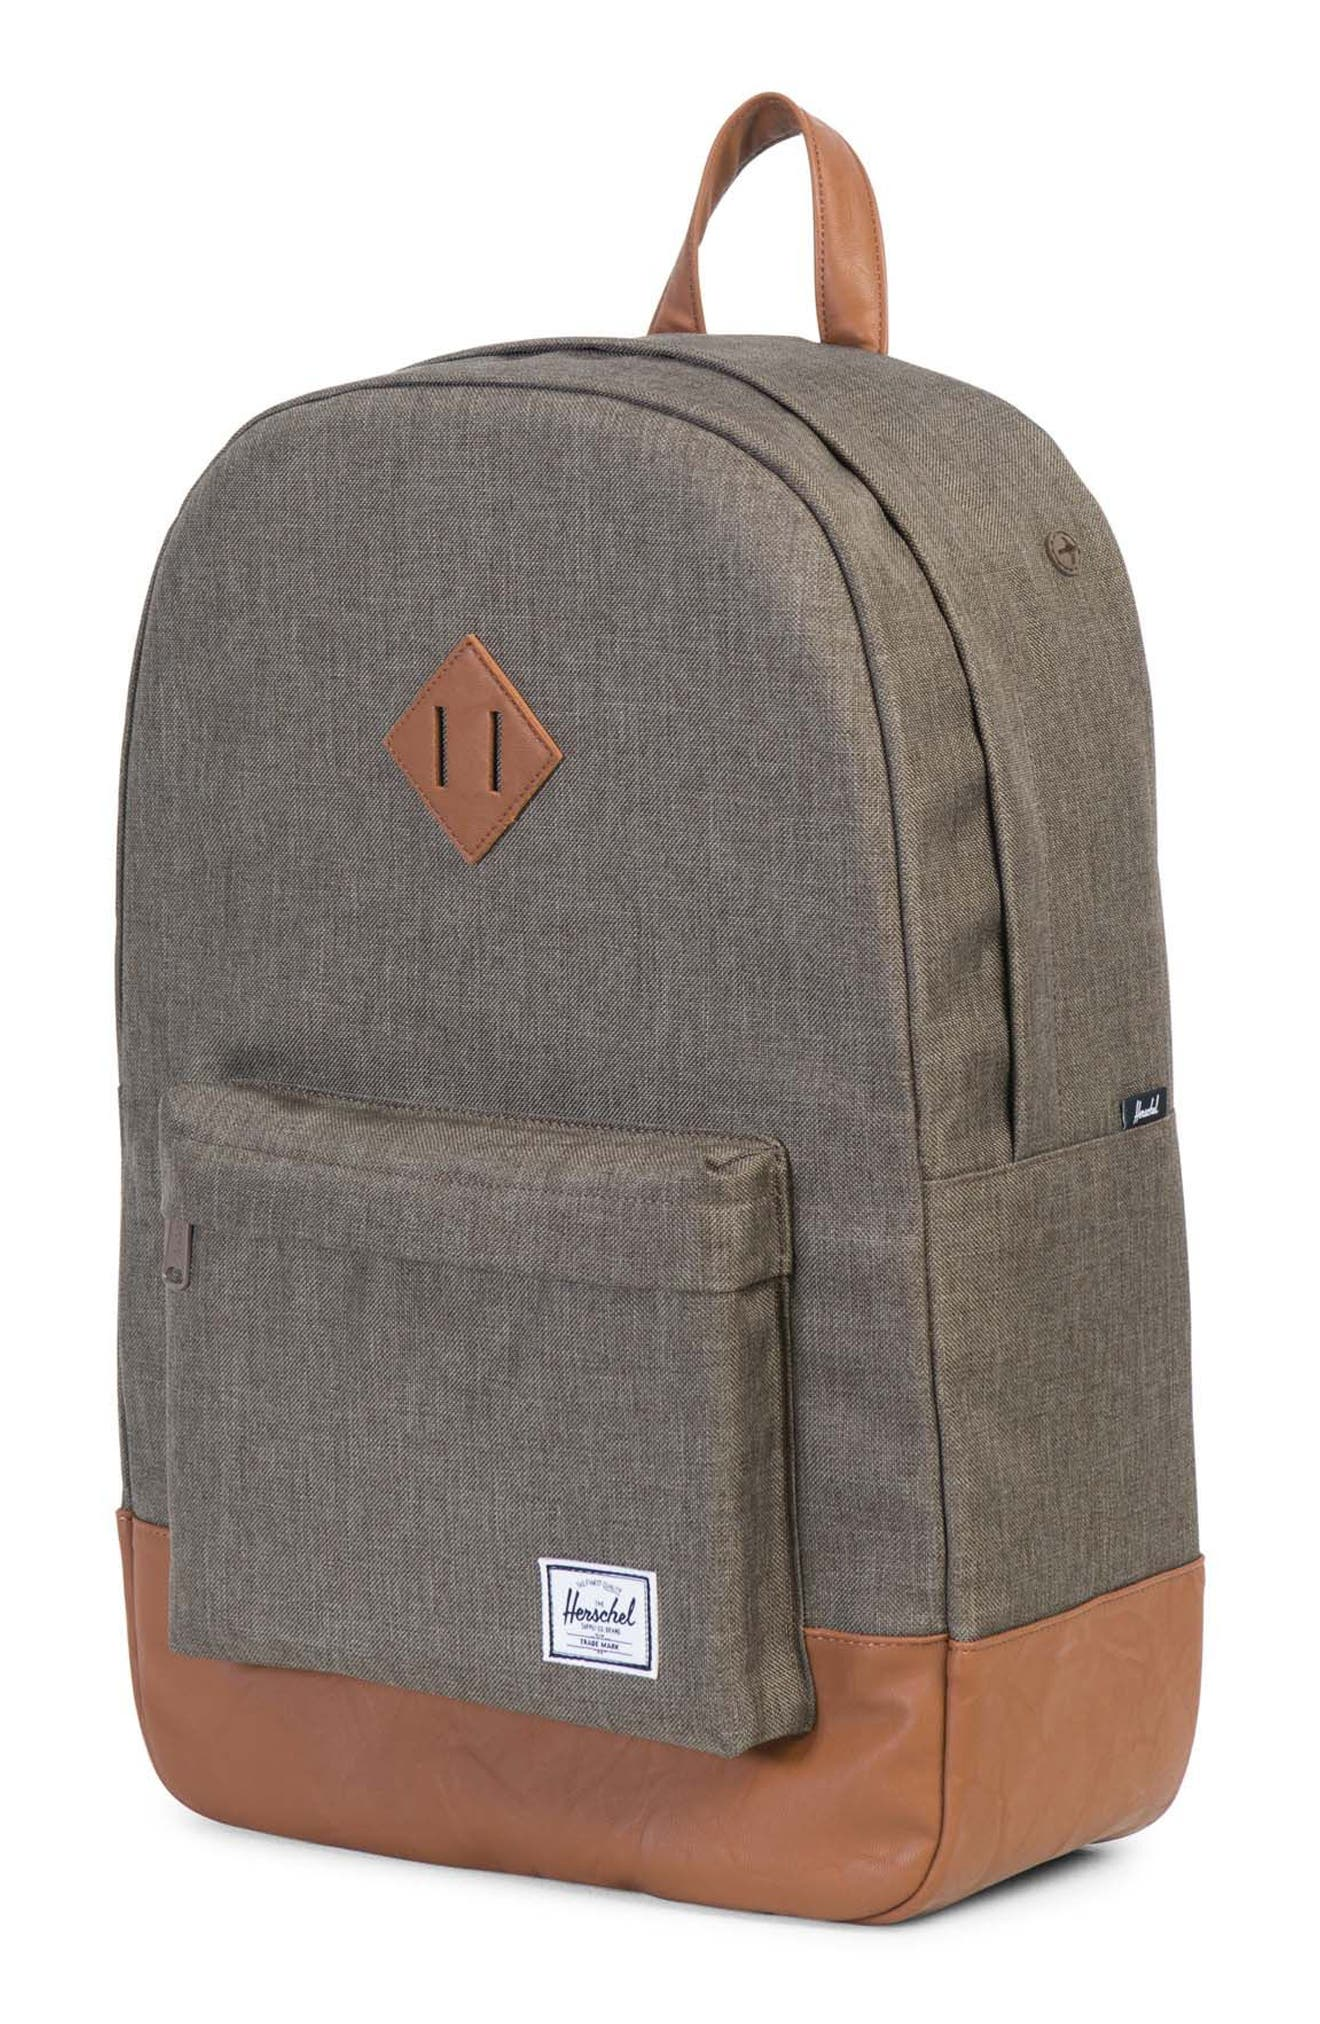 Heritage Backpack,                             Alternate thumbnail 2, color,                             218